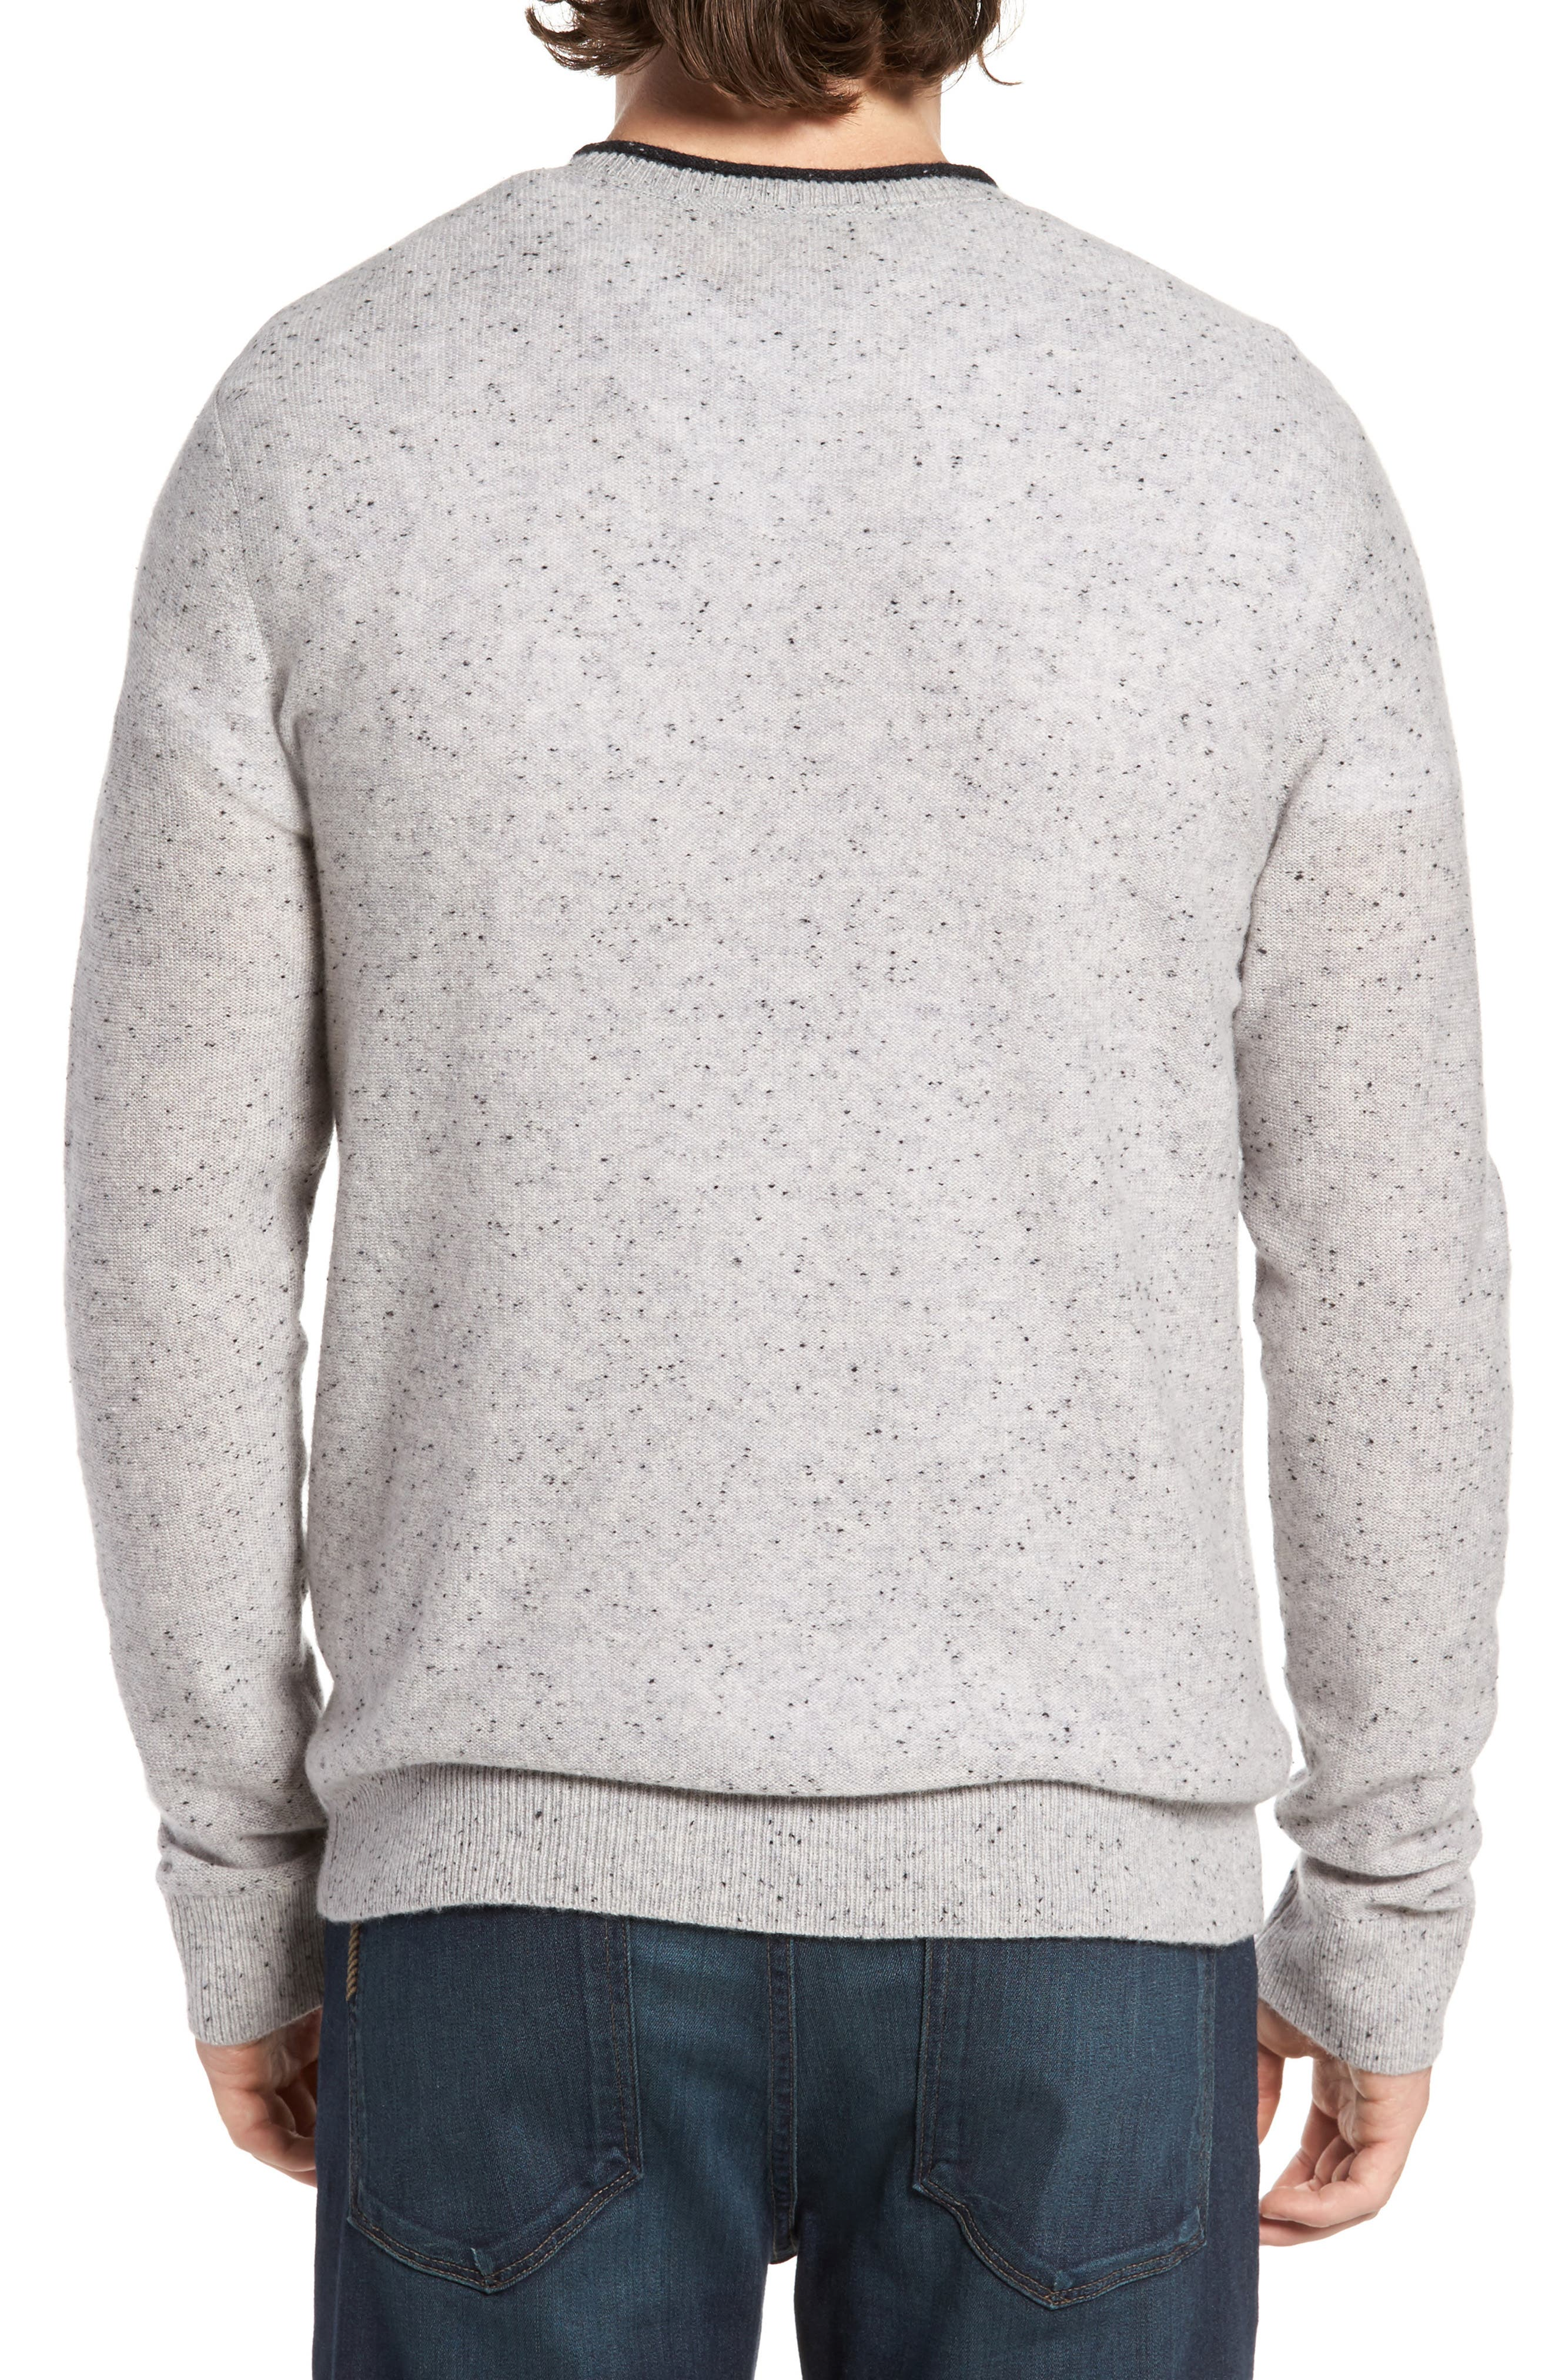 Nep Wool & Cashmere Sweater,                             Alternate thumbnail 2, color,                             Grey Donegal